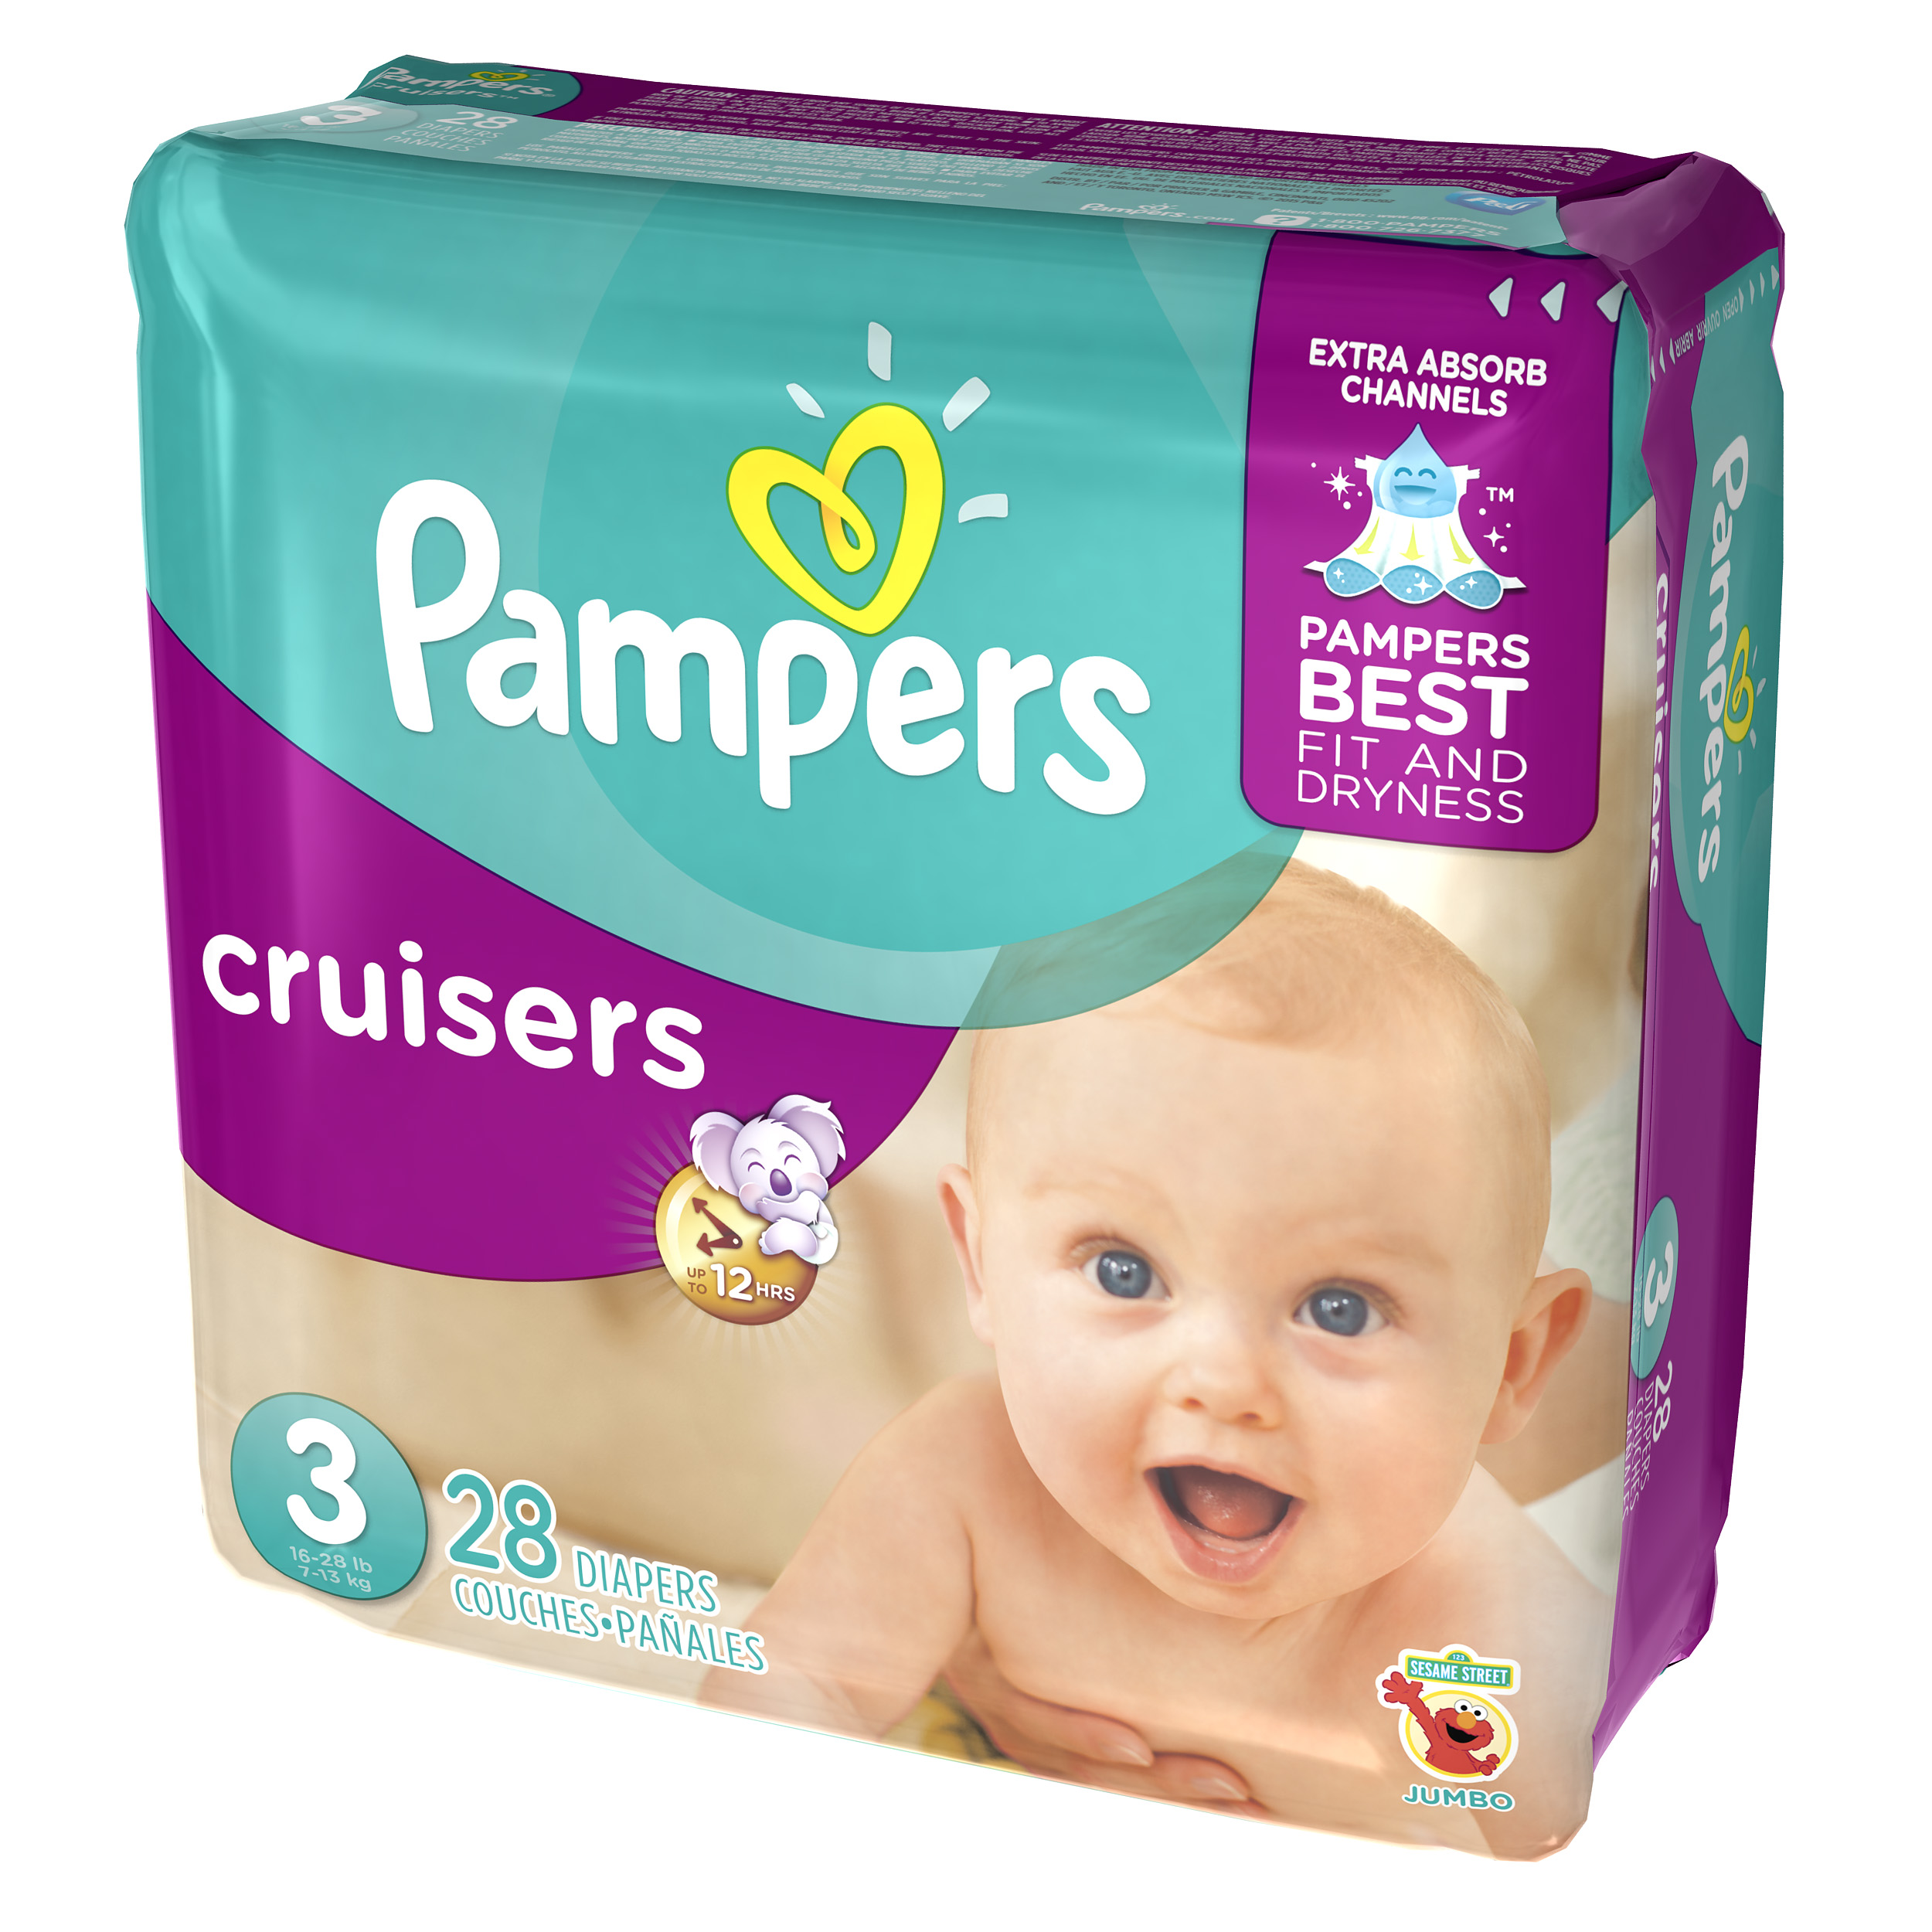 Pampers Cruisers Diapers Size 3 28 count